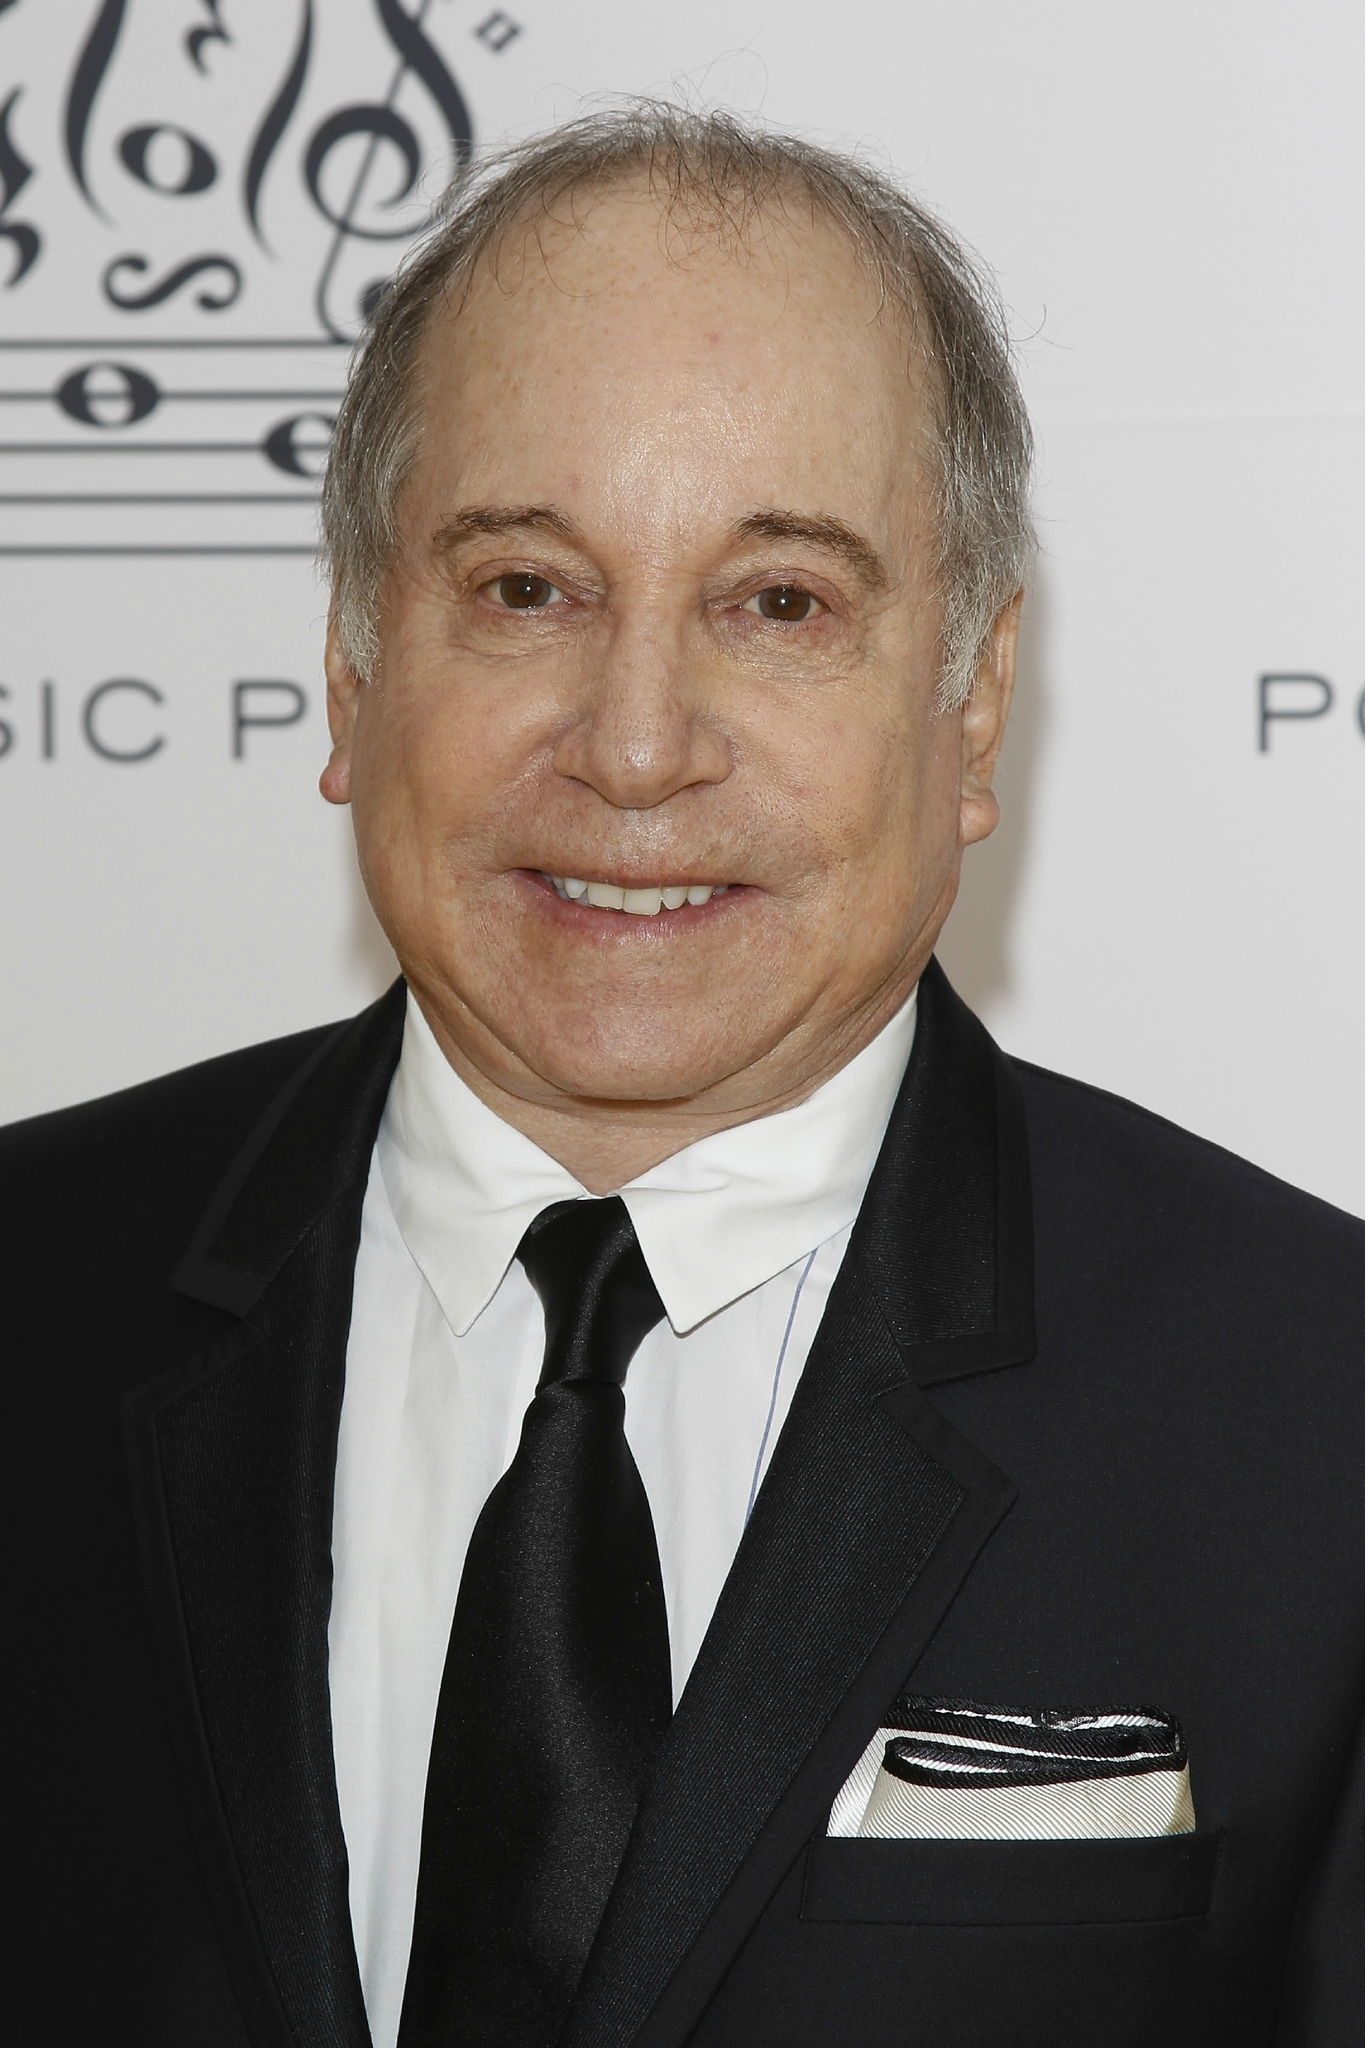 paul simon10